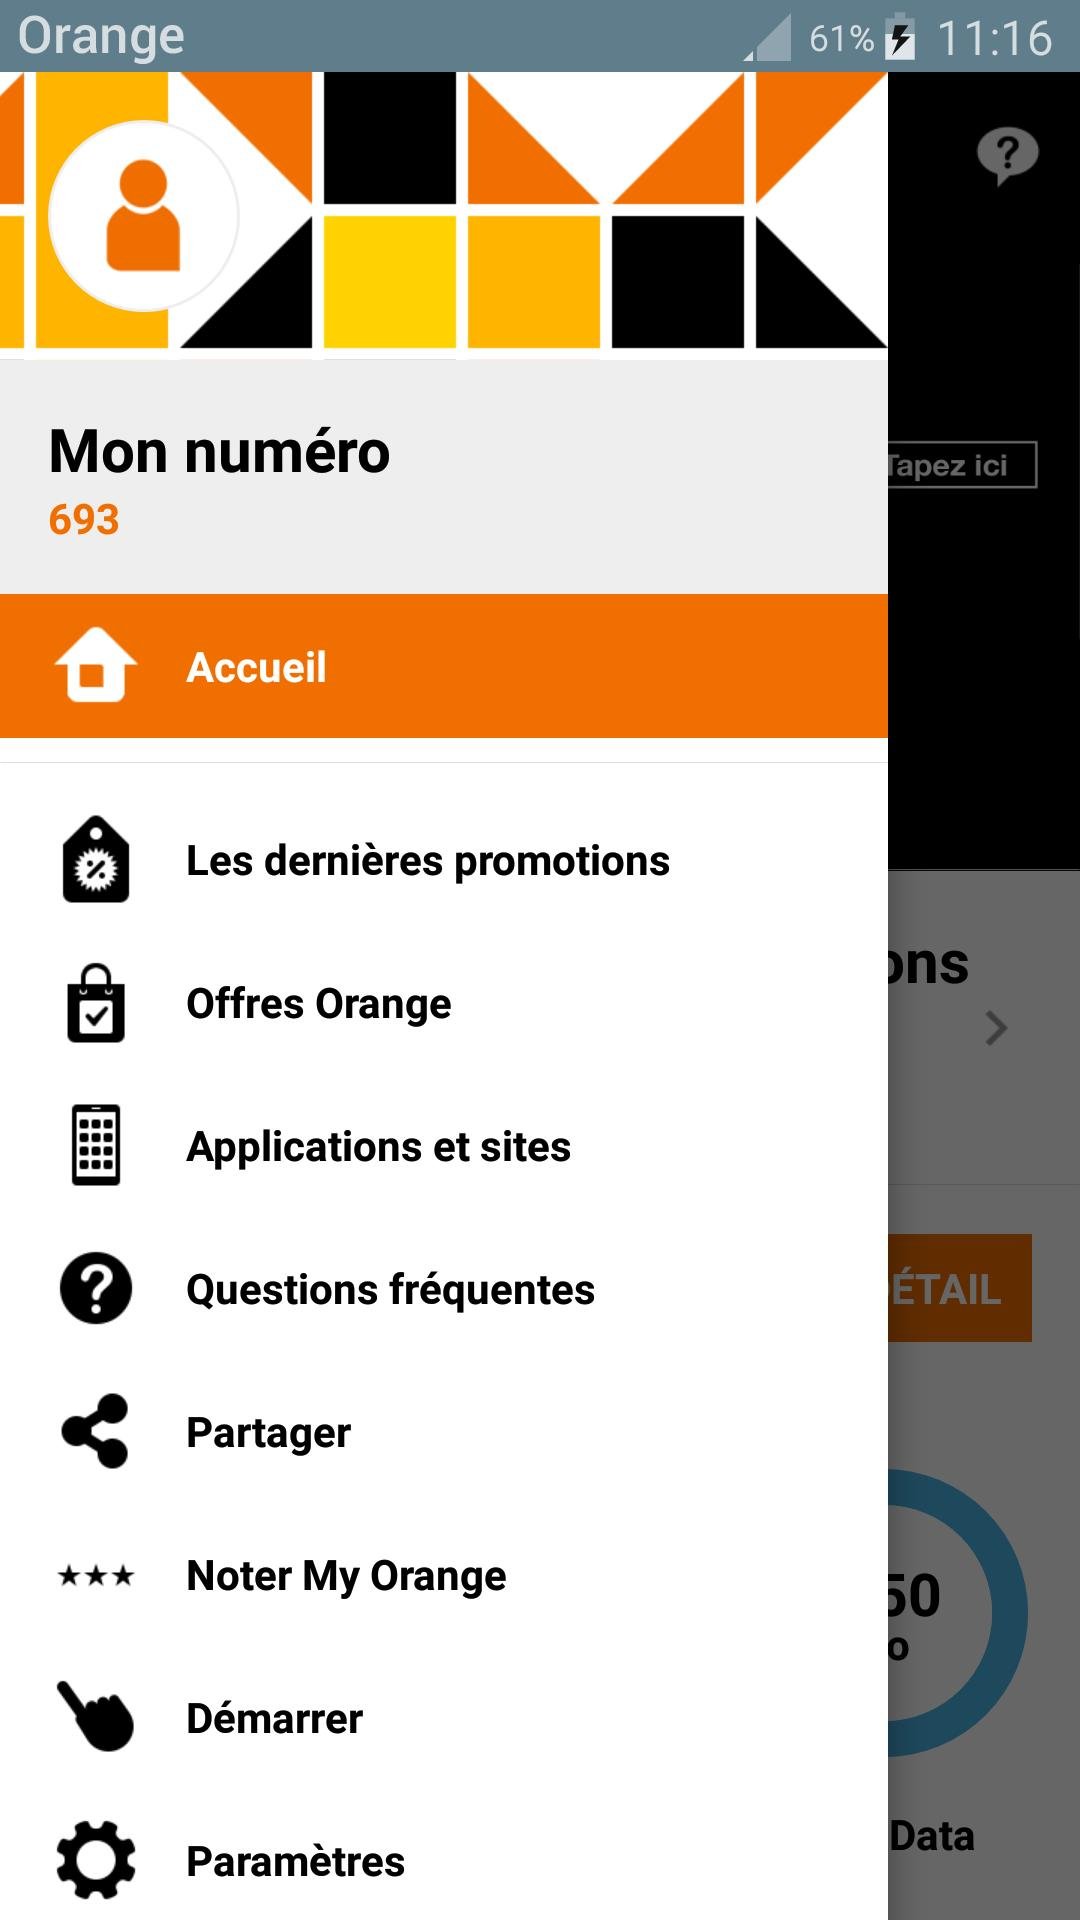 My Orange for Android - APK Download